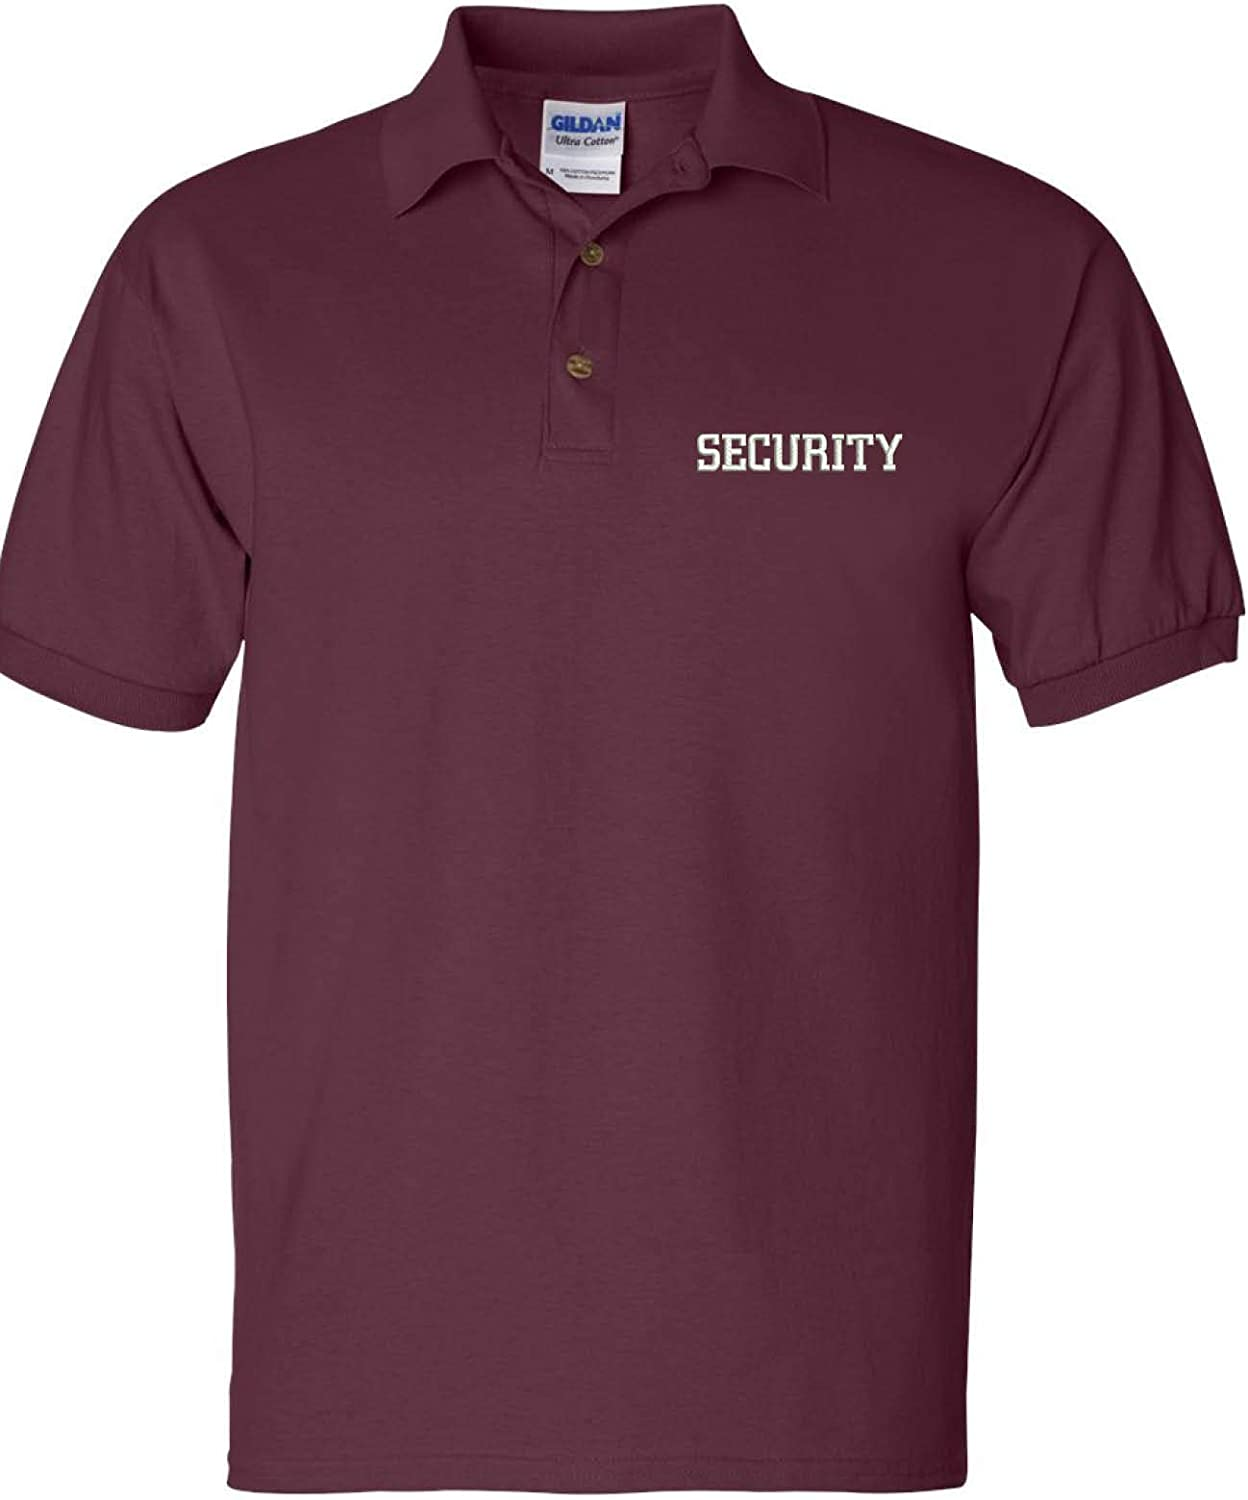 ALLNTRENDS Mens Polo T Shirt Security Embroidered Officer Top Embroidery Guard